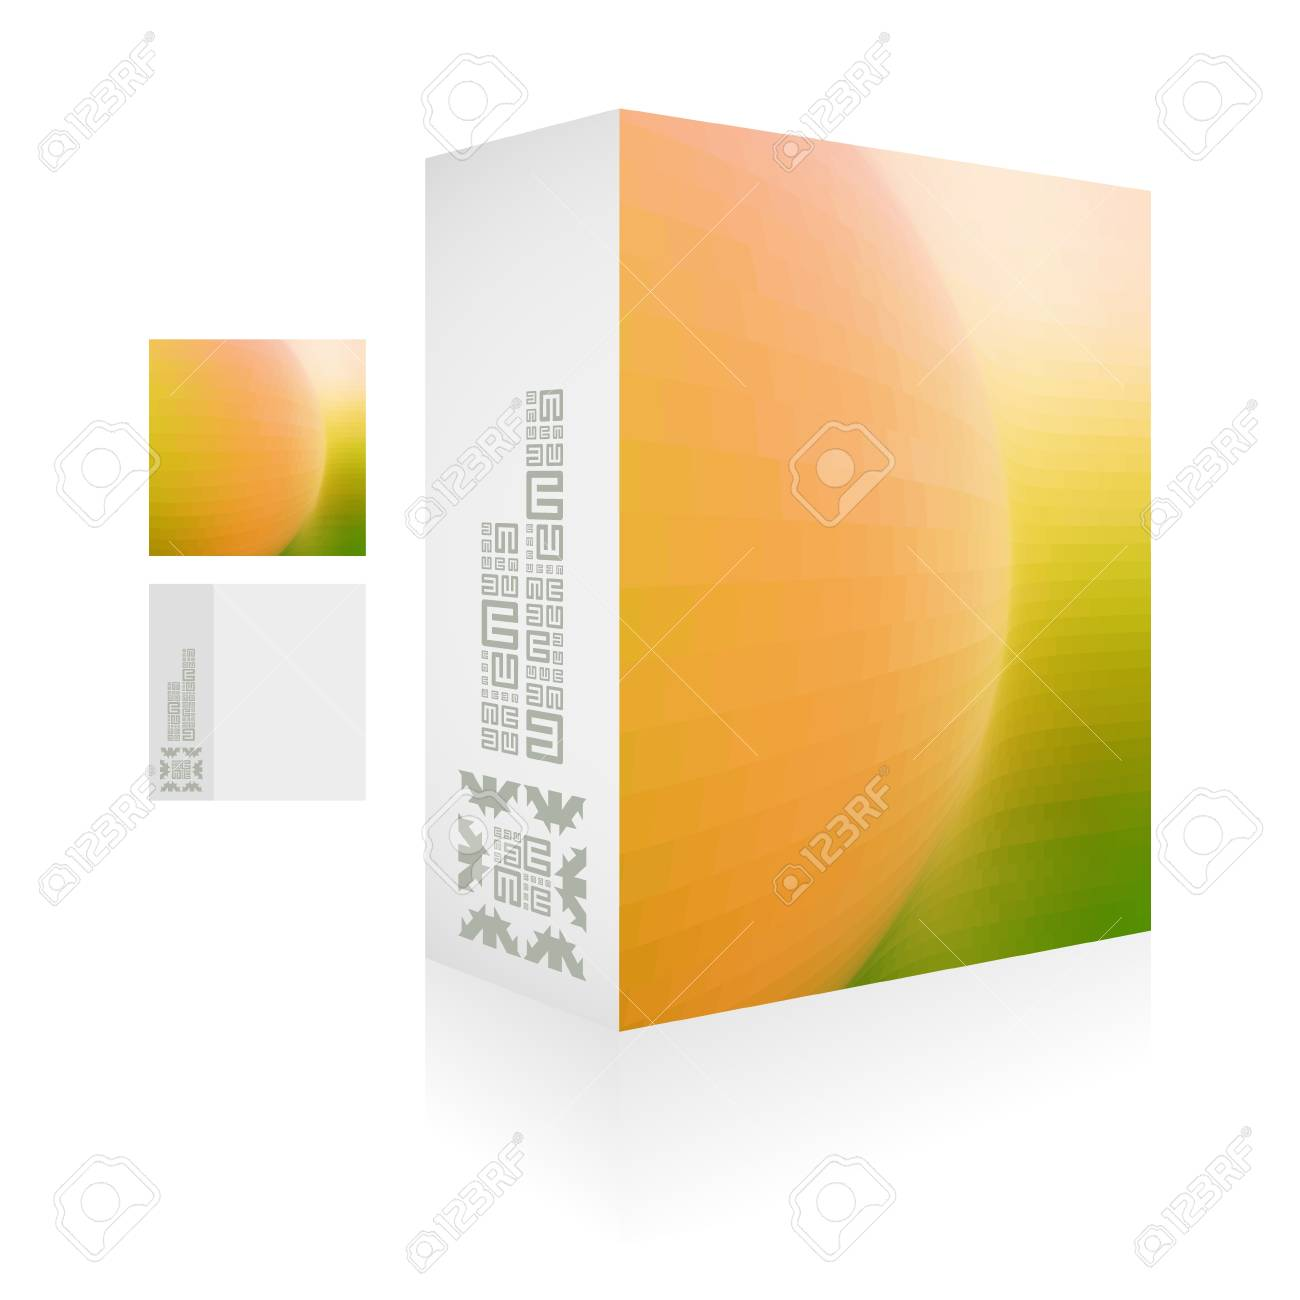 packaging box  Abstract illustration Stock Vector - 16479849